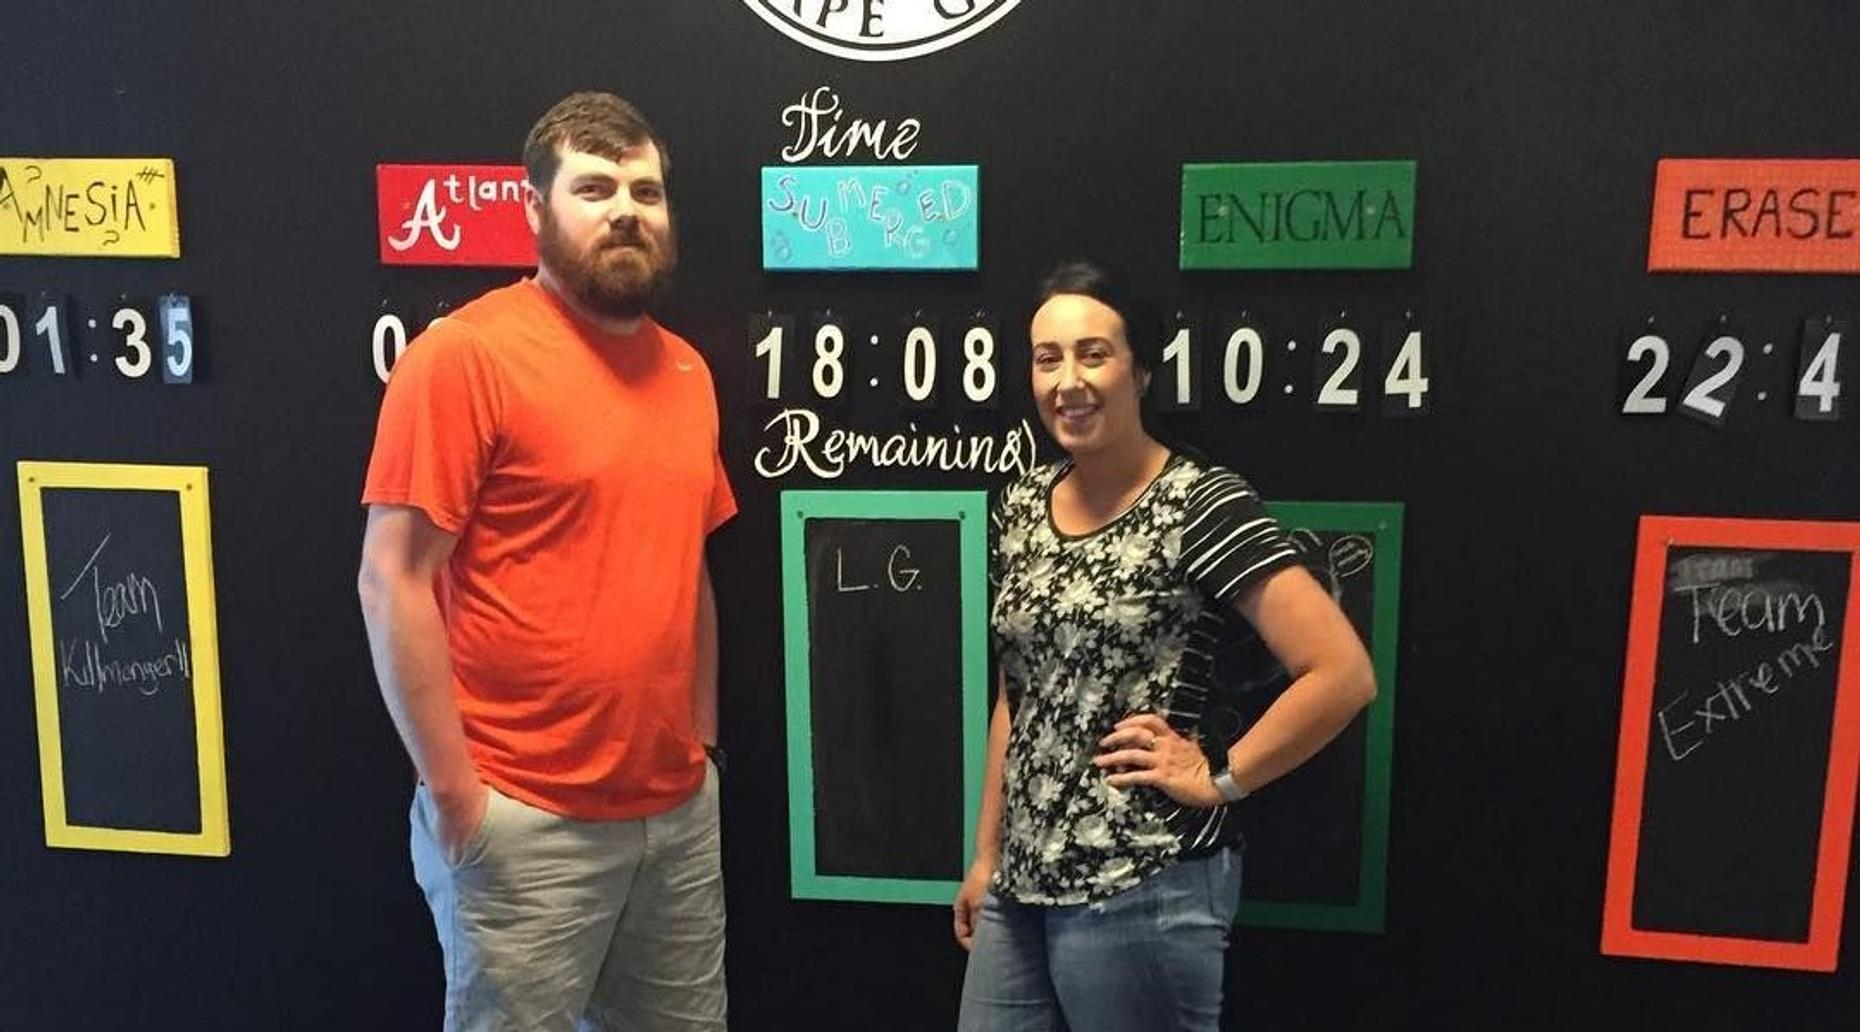 Amnesia: Escape Room Game in Atlanta